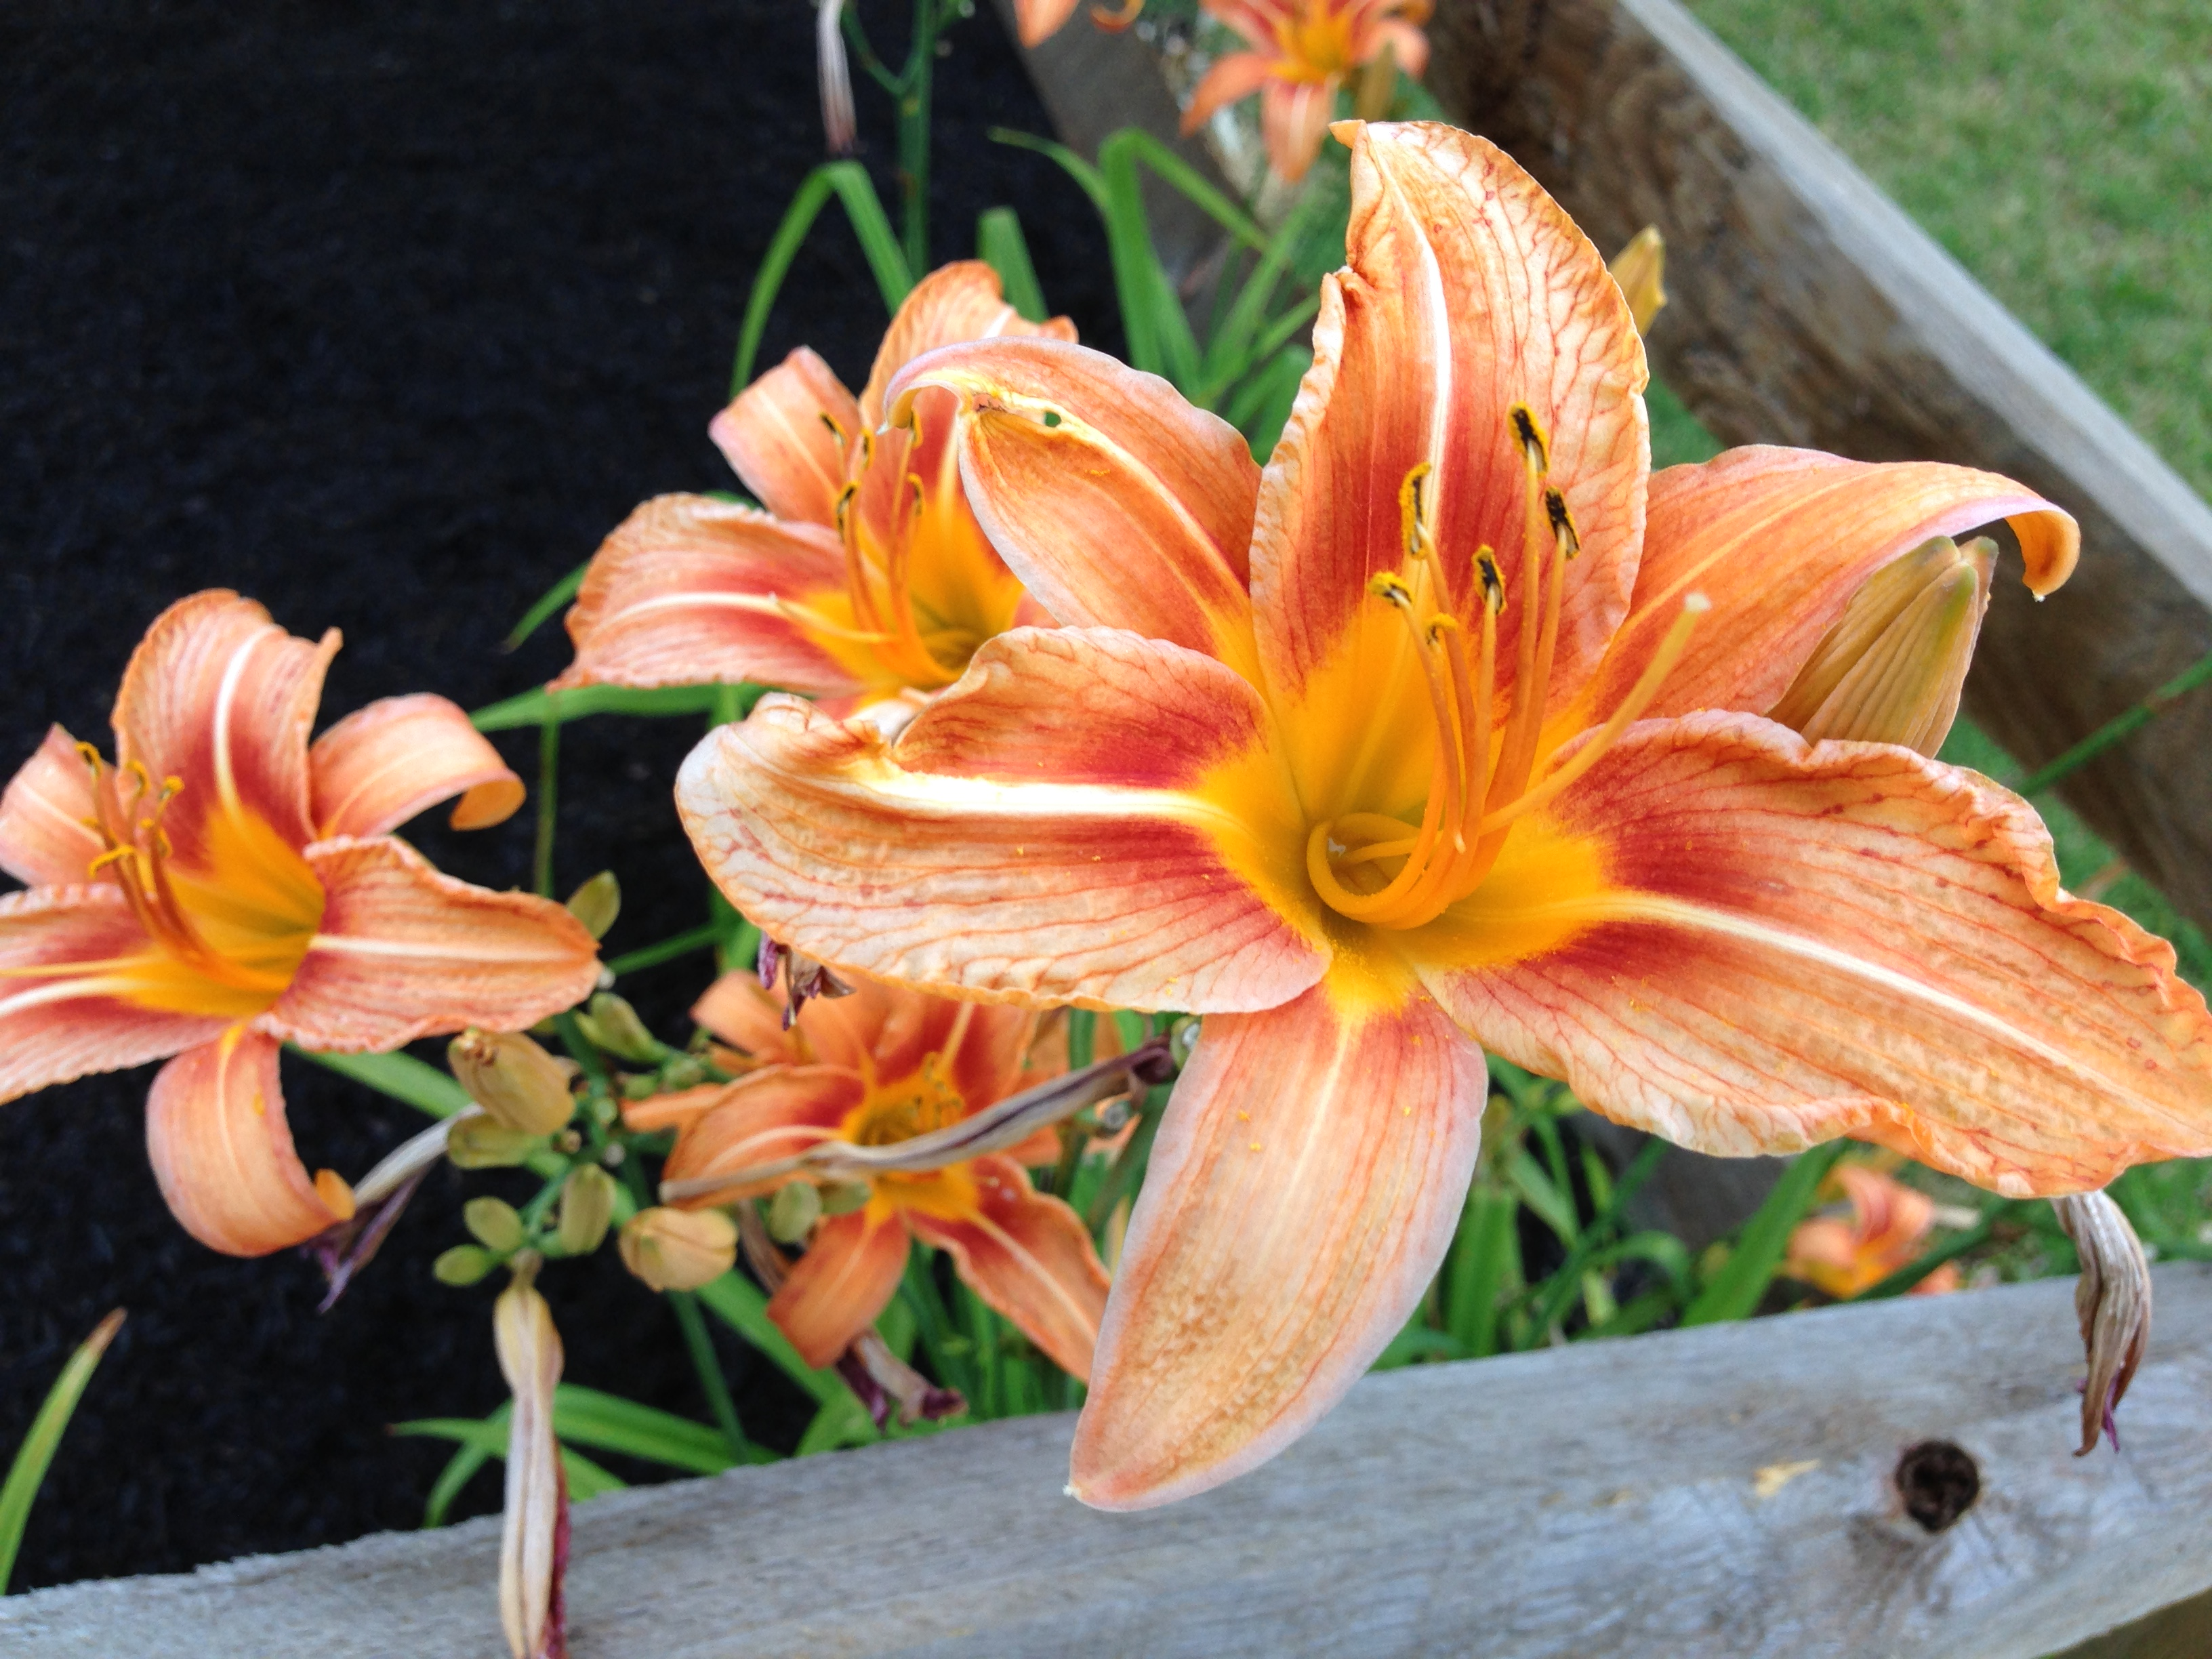 """We call these the """"Sangmeister Lilies"""" because they were originally planted at Vince & Charlotte Sangmeister's home in Mt Ephriam, NJ."""